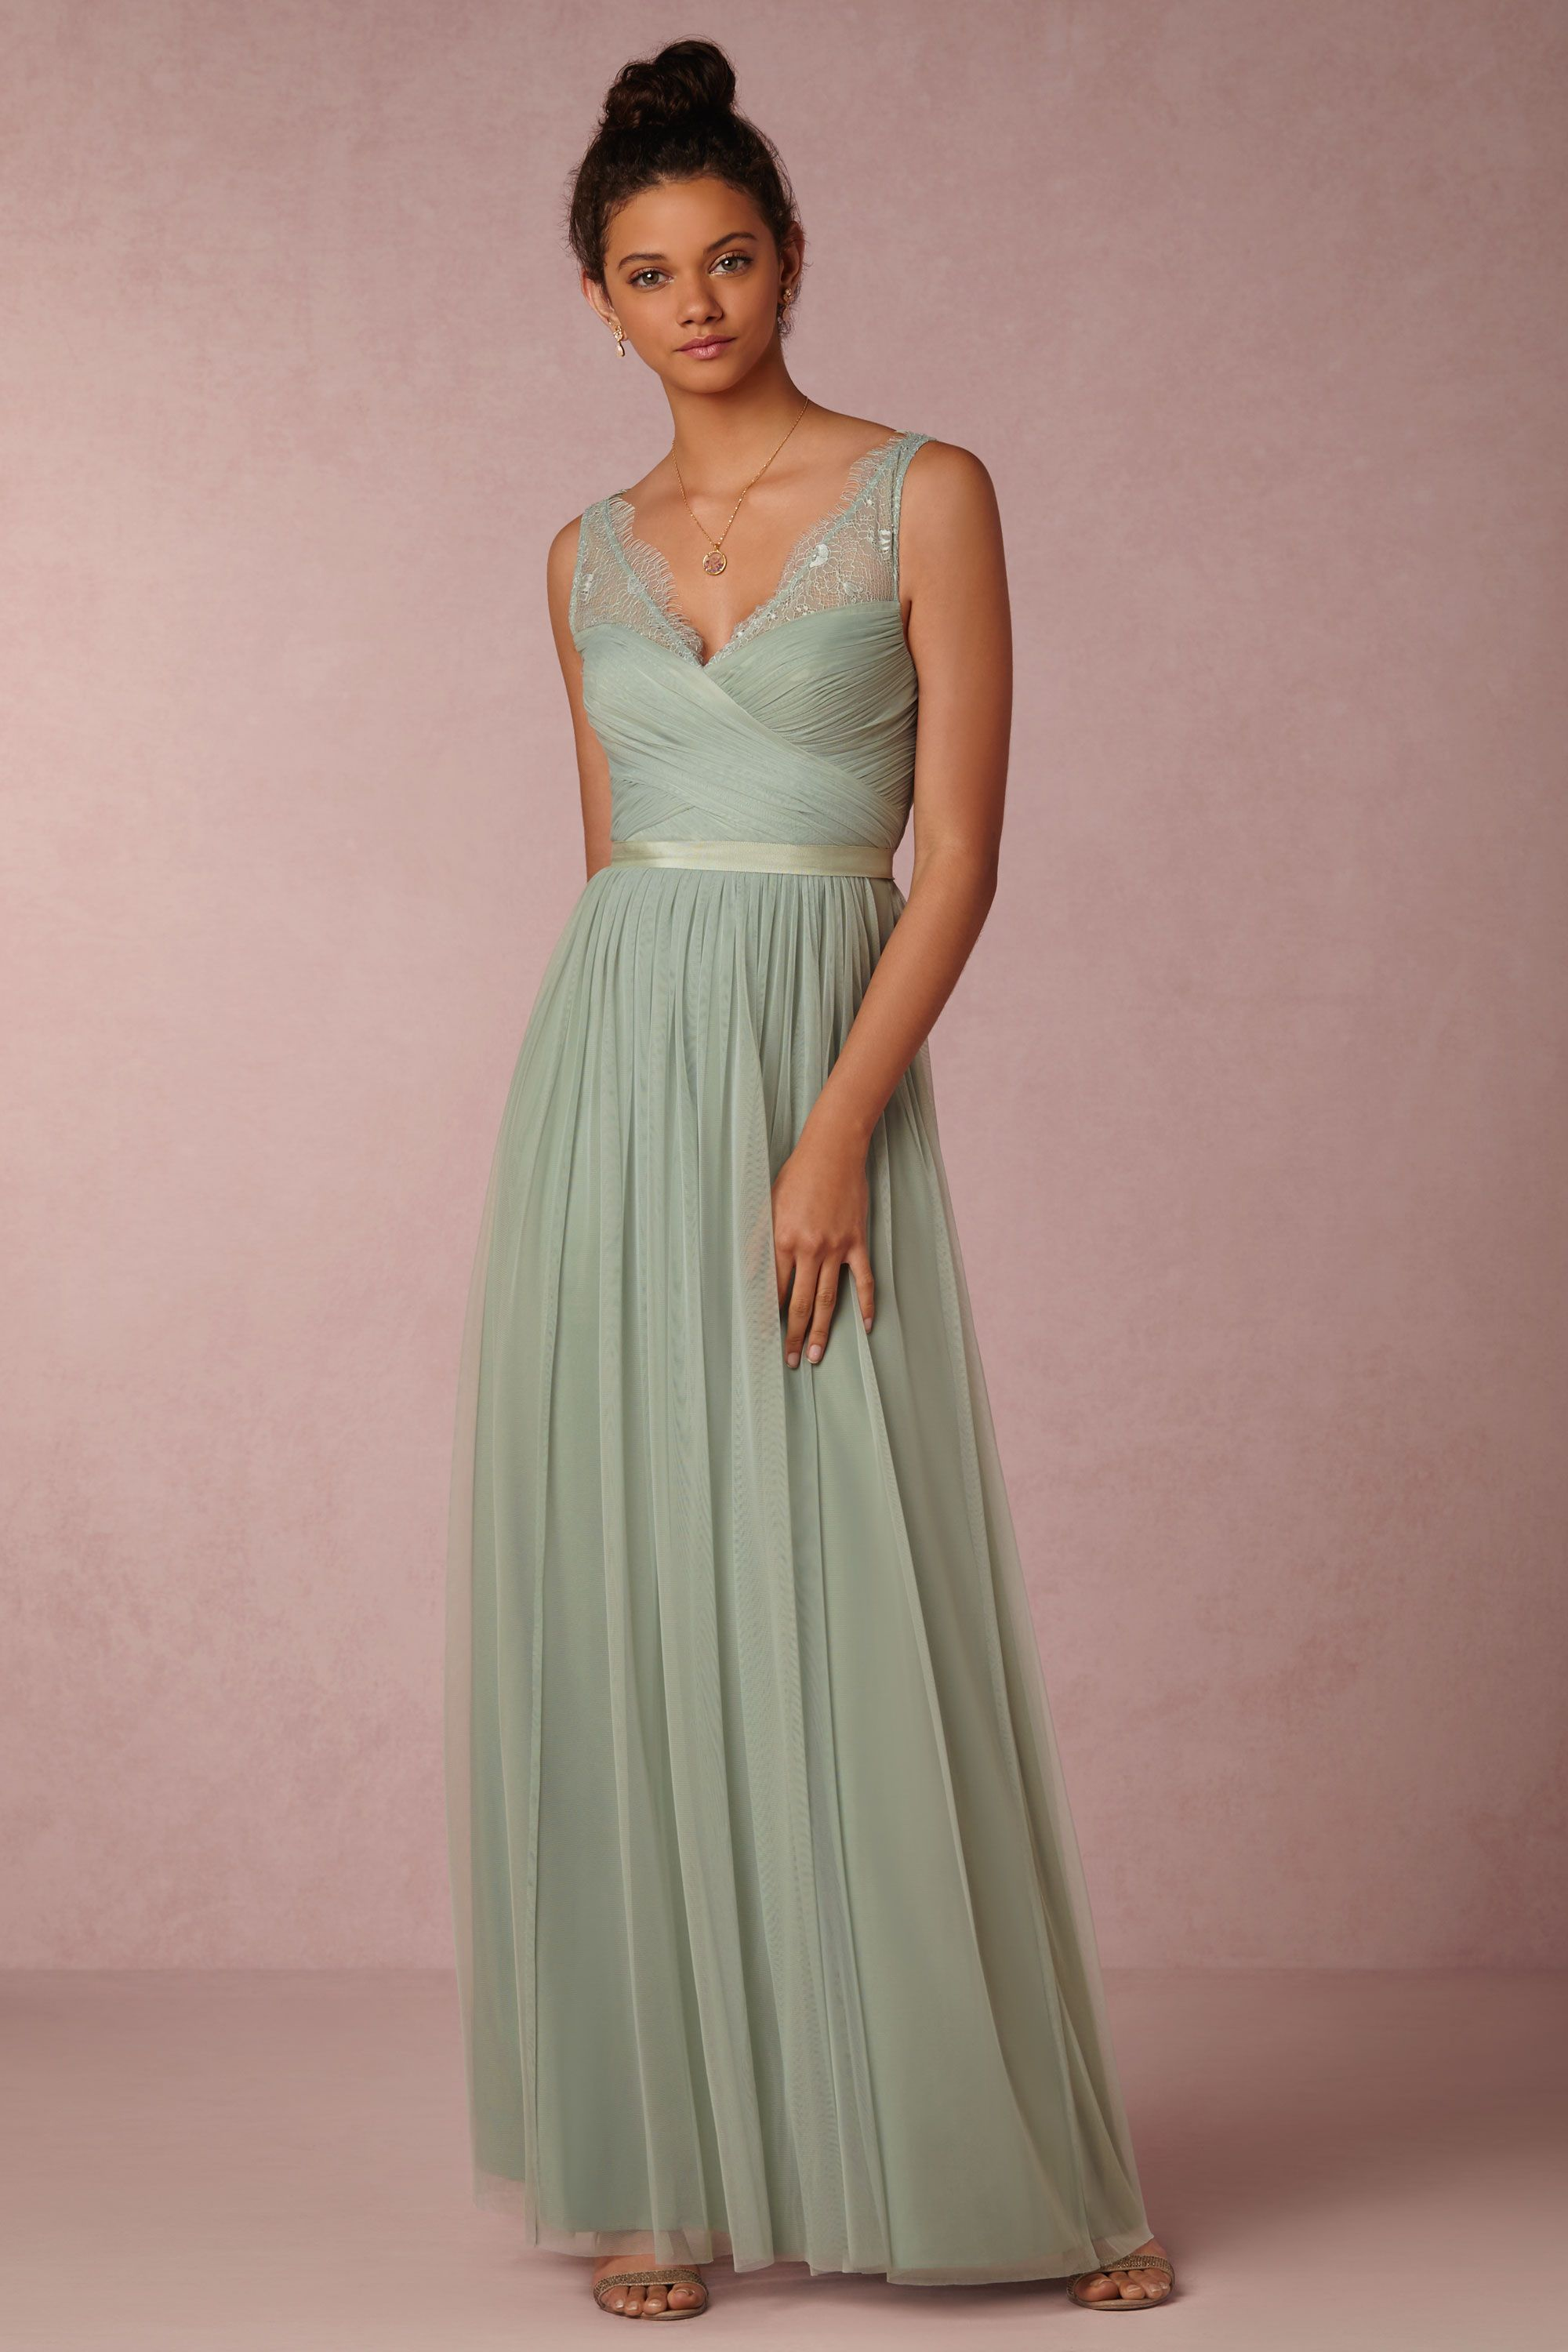 Fleur Dress from @BHLDN Bridesmaids dress in most colors $250 ...